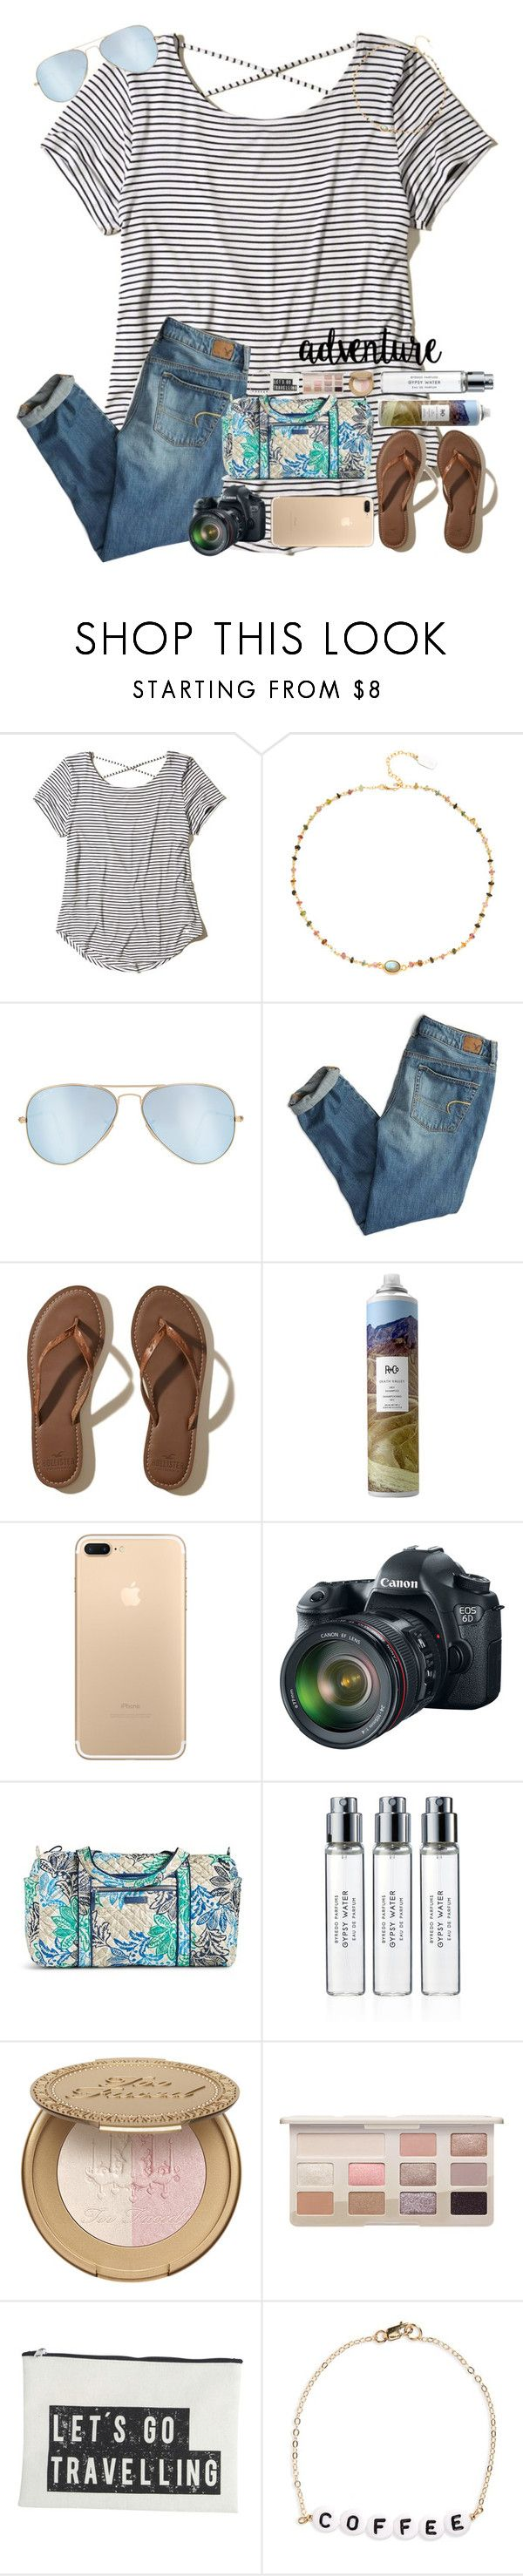 """Be fearless in the pursuit of what sets your soul on fire."" by erinleigh02 ❤ liked on Polyvore featuring Hollister Co., Ela Rae, Ray-Ban, American Eagle Outfitters, R+Co, Eos, Vera Bradley, Byredo, House Doctor and Ryan Porter"